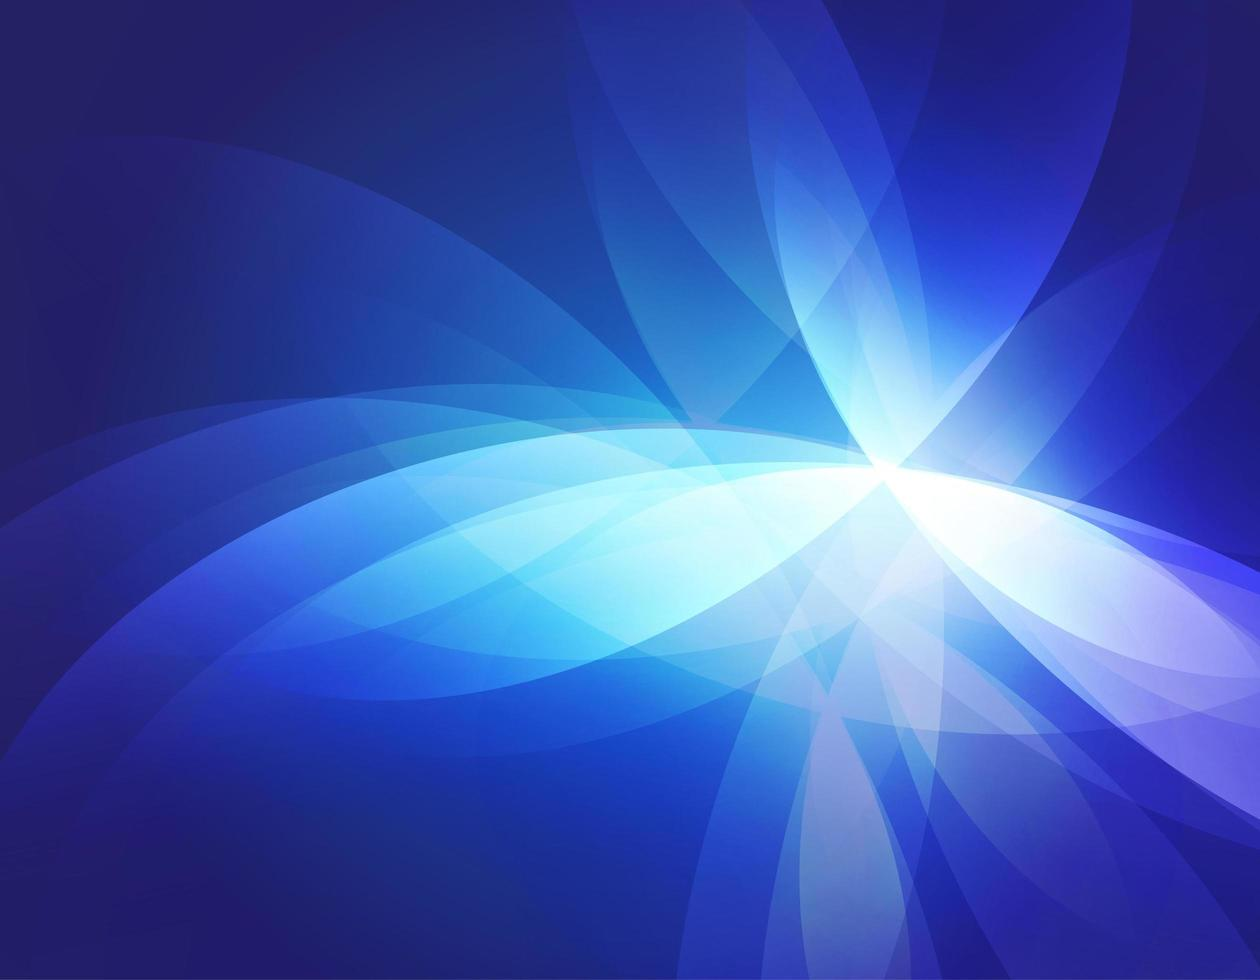 Blue glowing abstract background vector